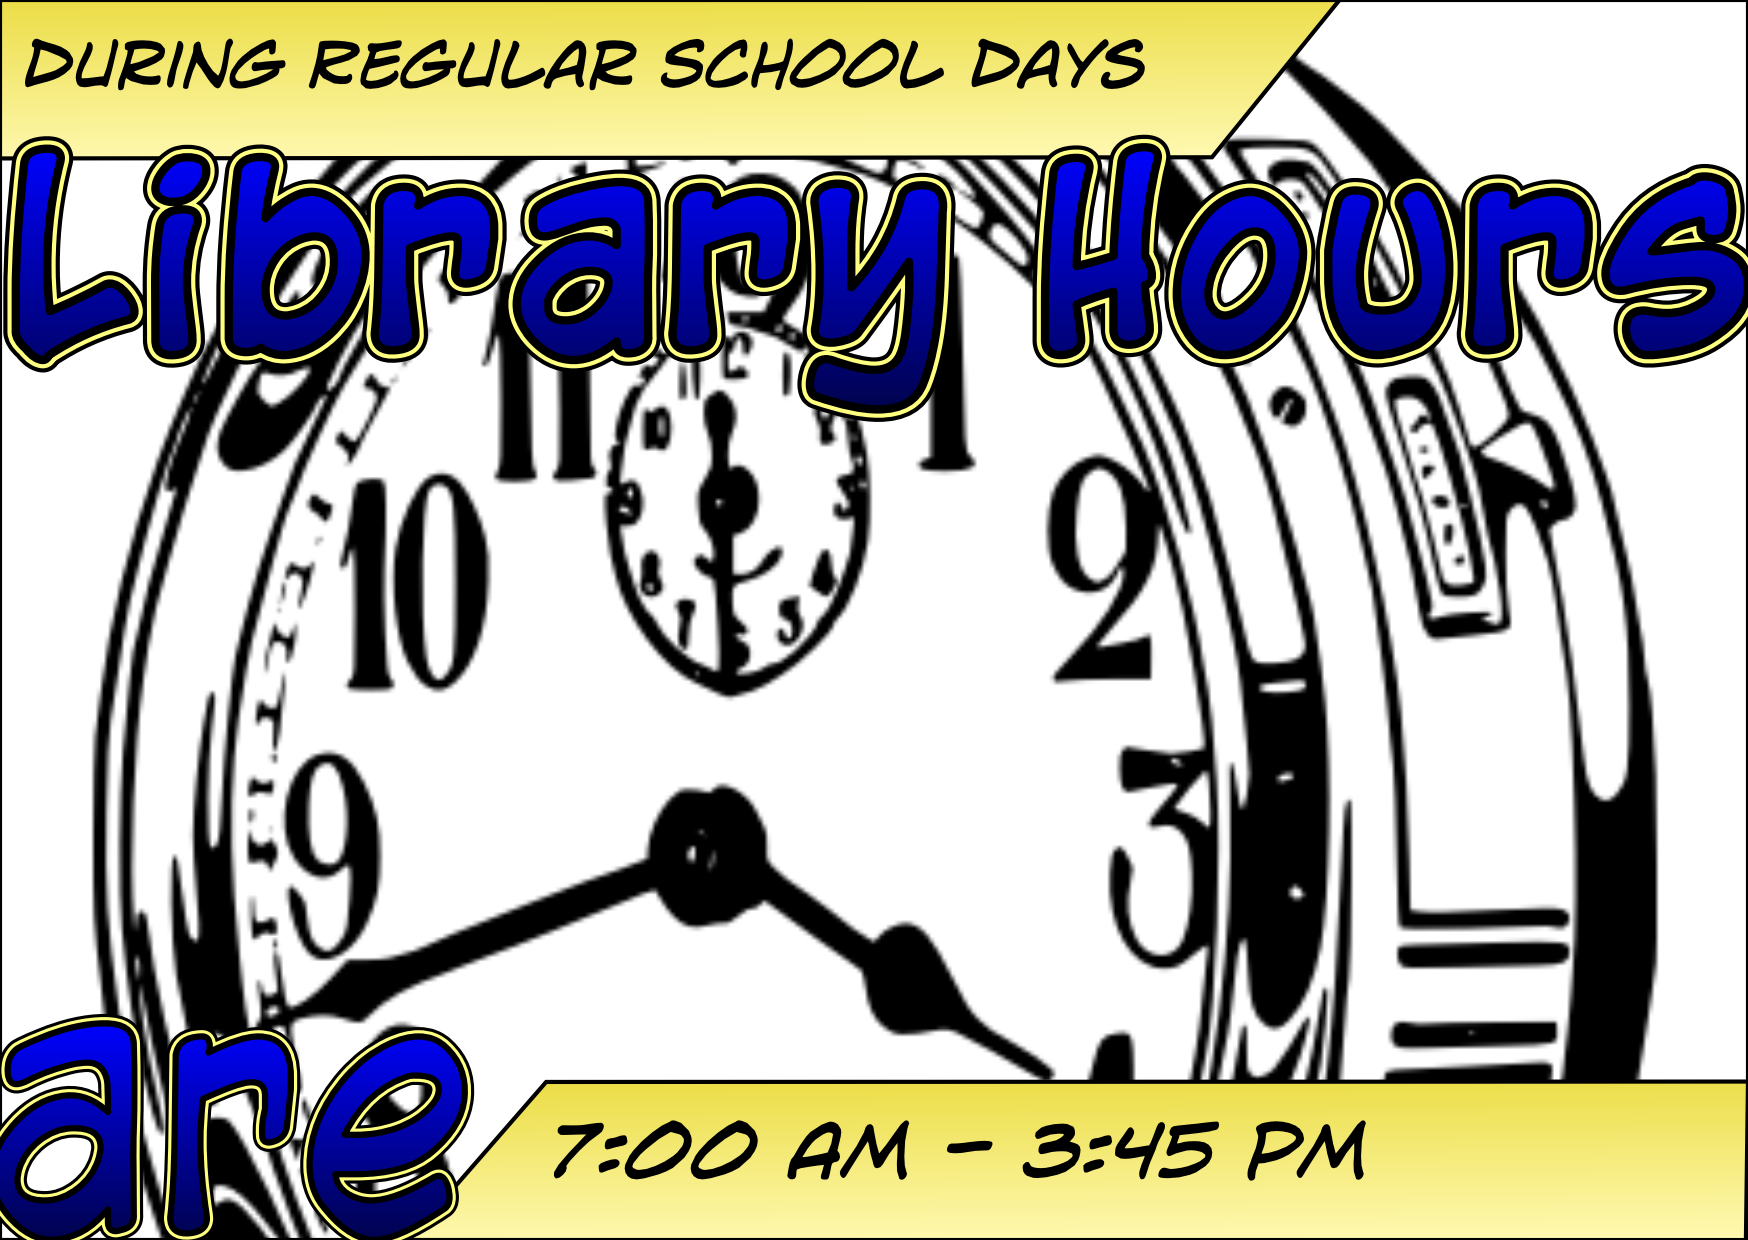 Library Hours are 7AM - 3:45 PM on regular school days.